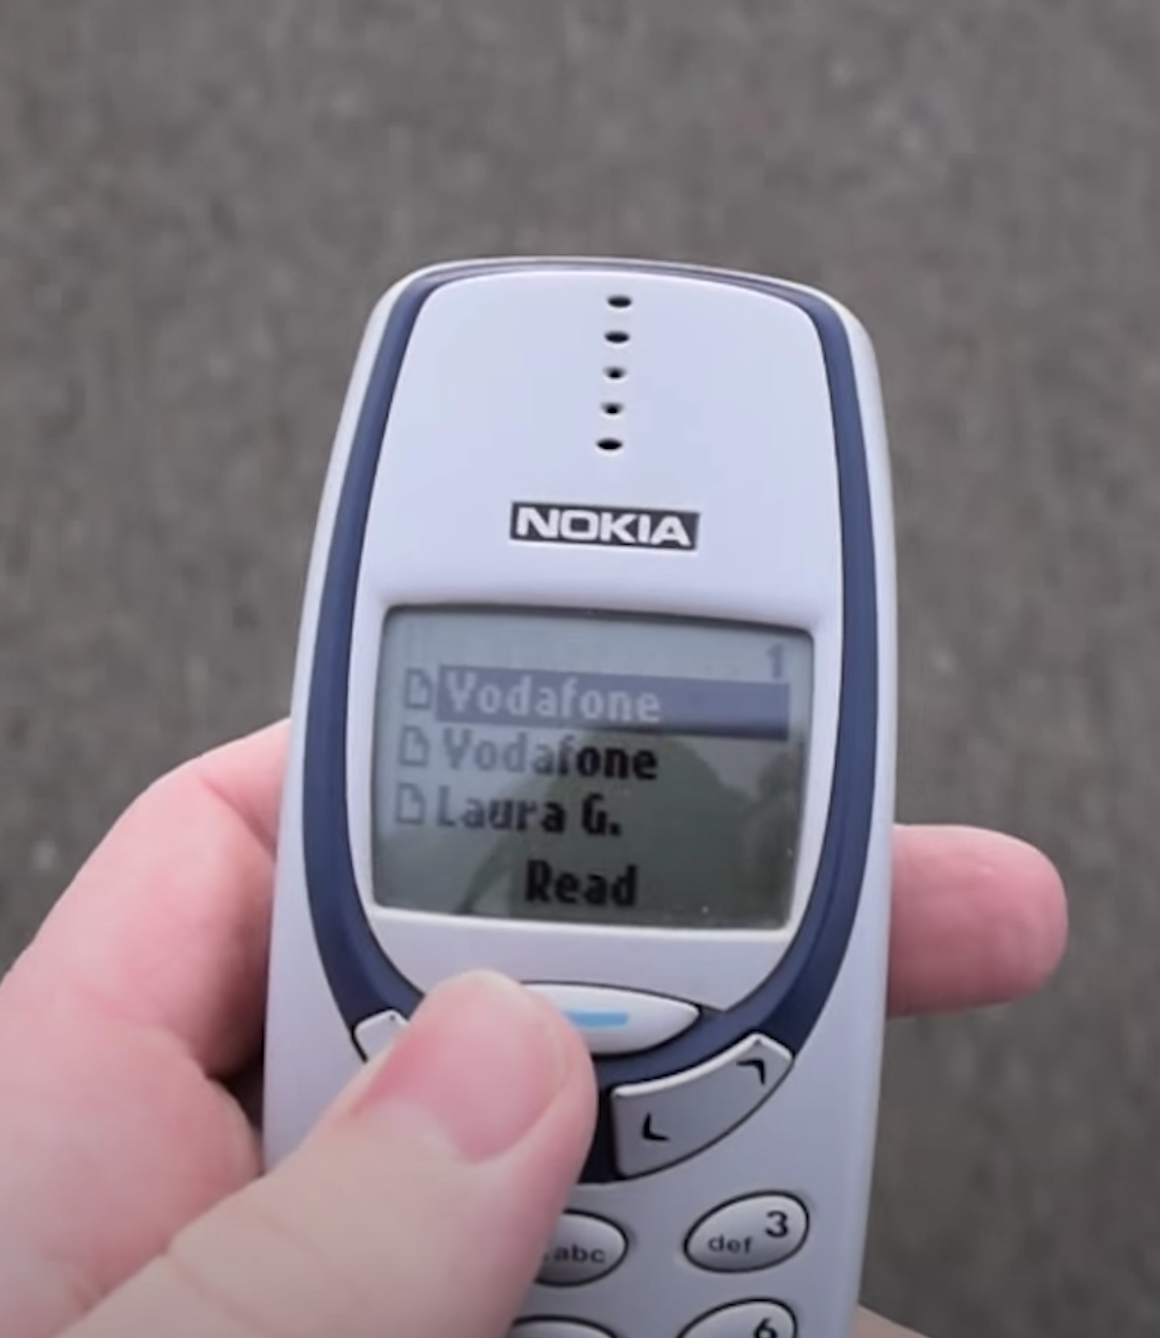 Interface of the Nokia's SMS application